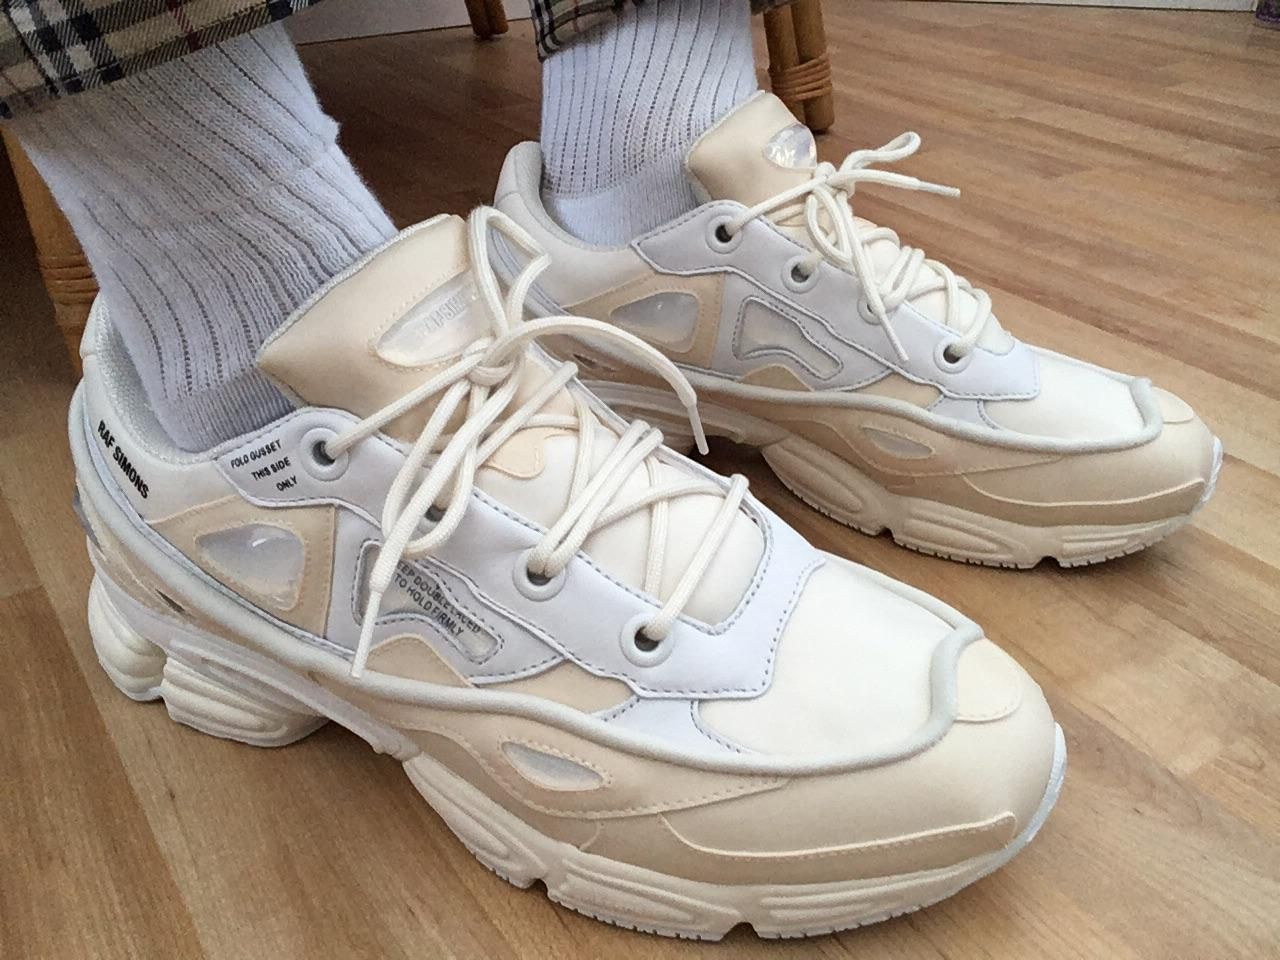 Raf Simons Ozweego Bunny Cream On Foot | Raf simons shoes